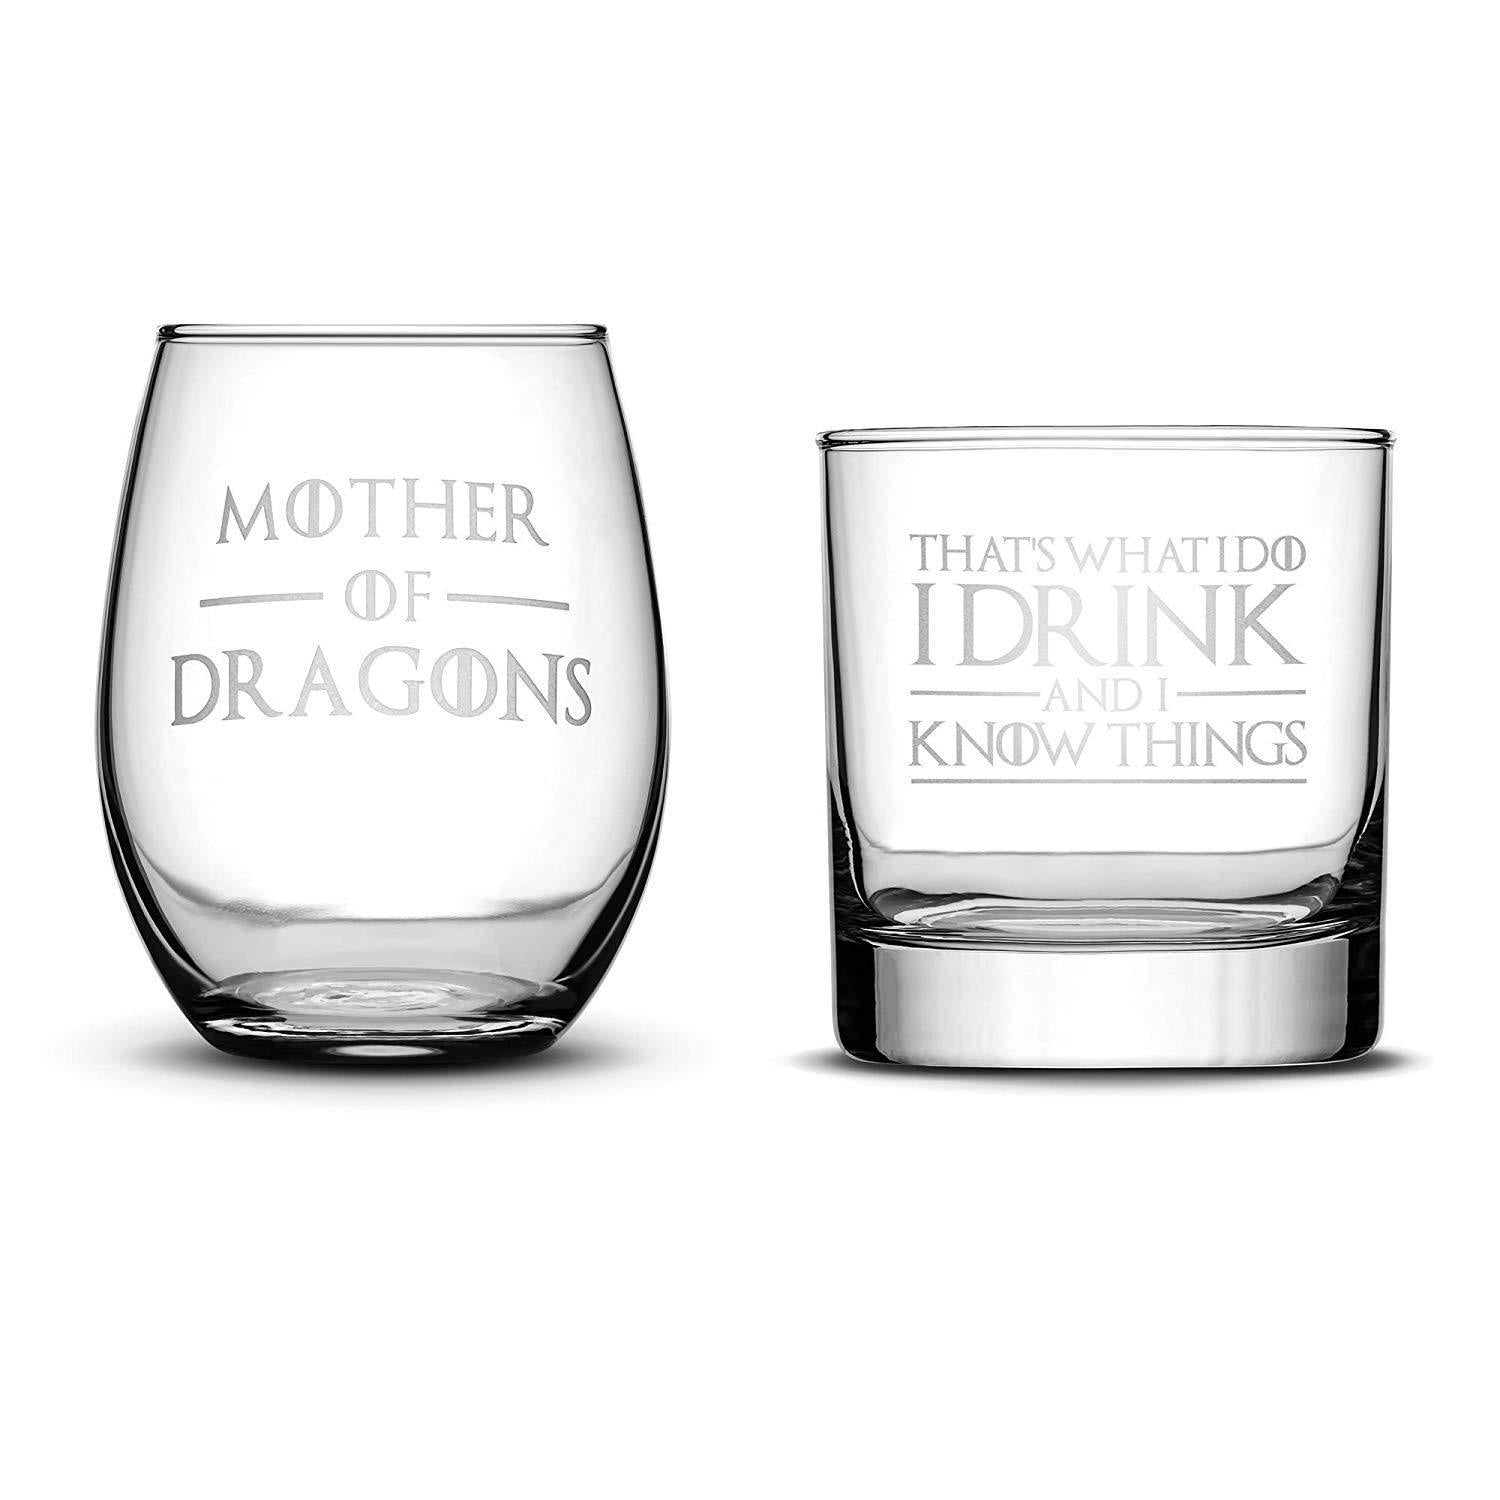 Default Title Premium Wine Glass (Mother of Dragons), Whiskey Glass (I Drink and I Know Things), Set of 2 Integrity Bottles